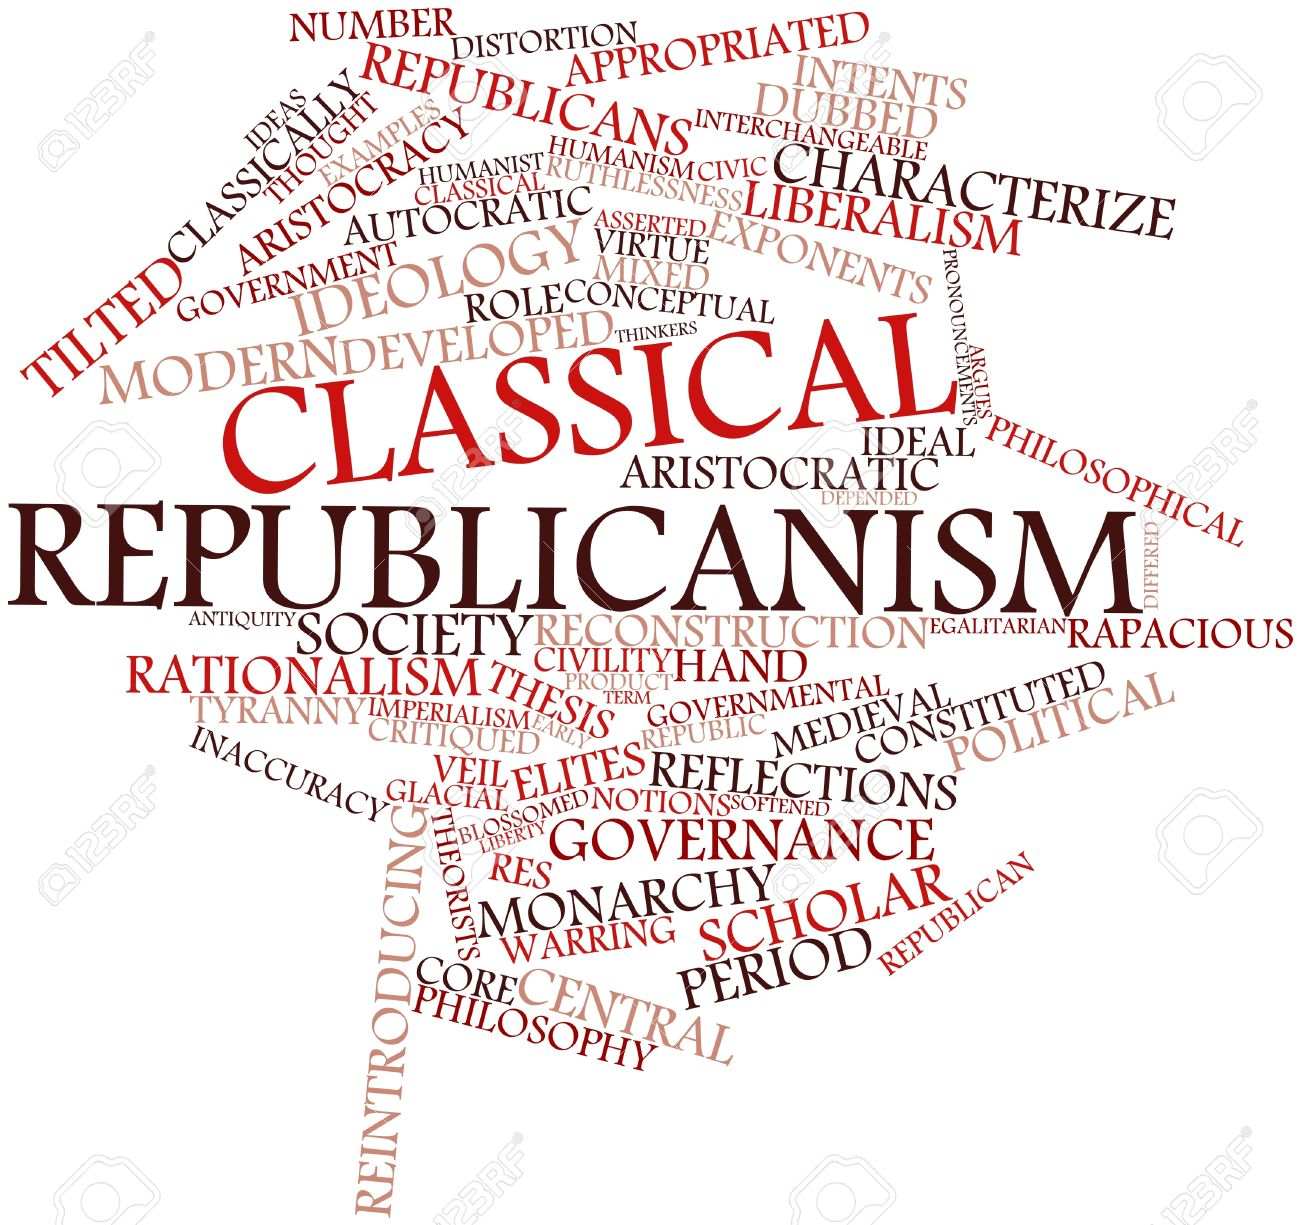 what is classical republicanism